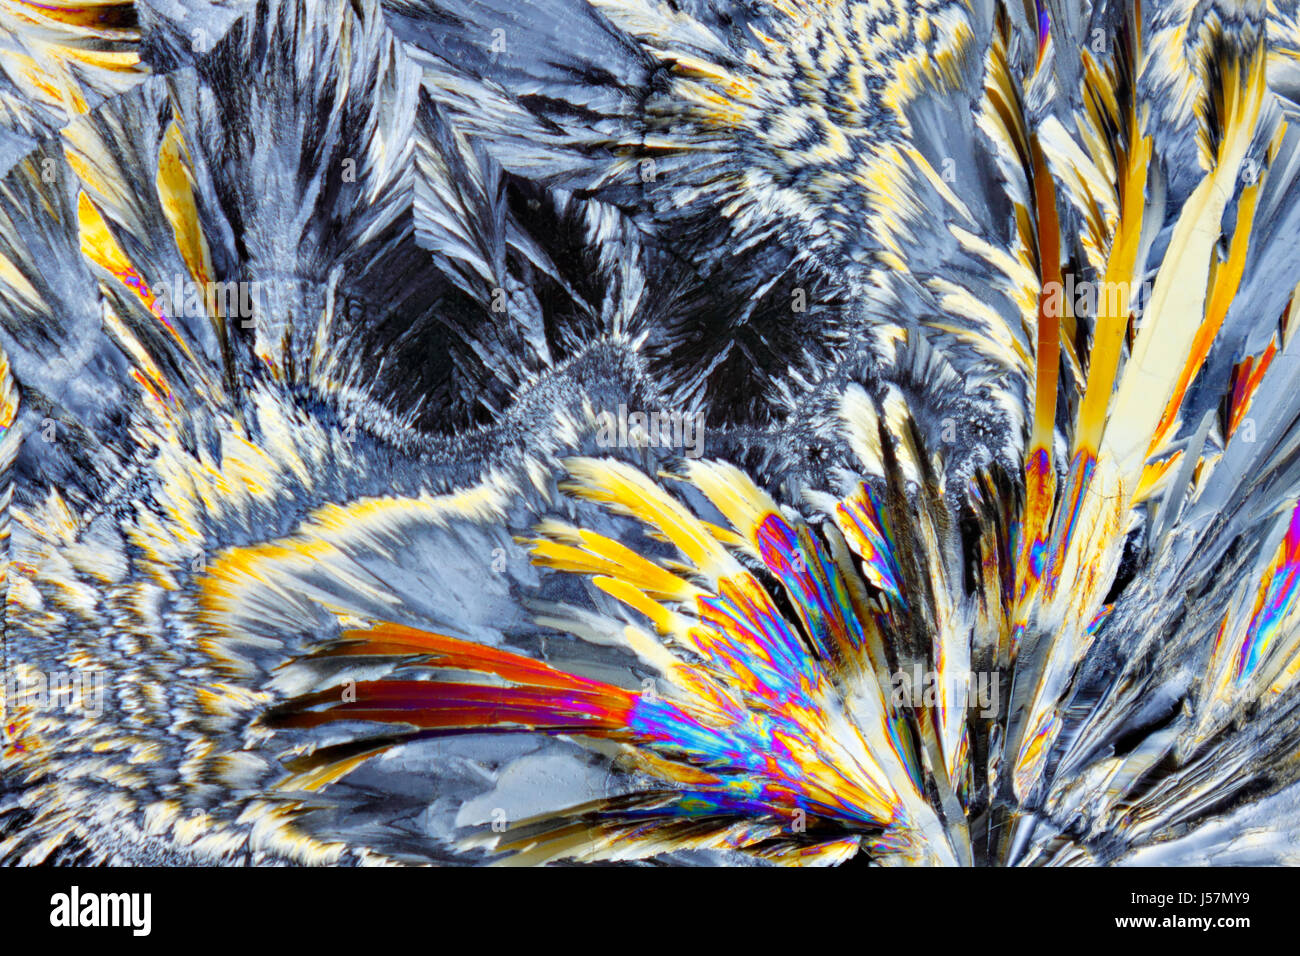 Microscopic view of colorful sucrose crystals. Recrystallized table sugar. Polarized light, crossed polarizers. - Stock Image